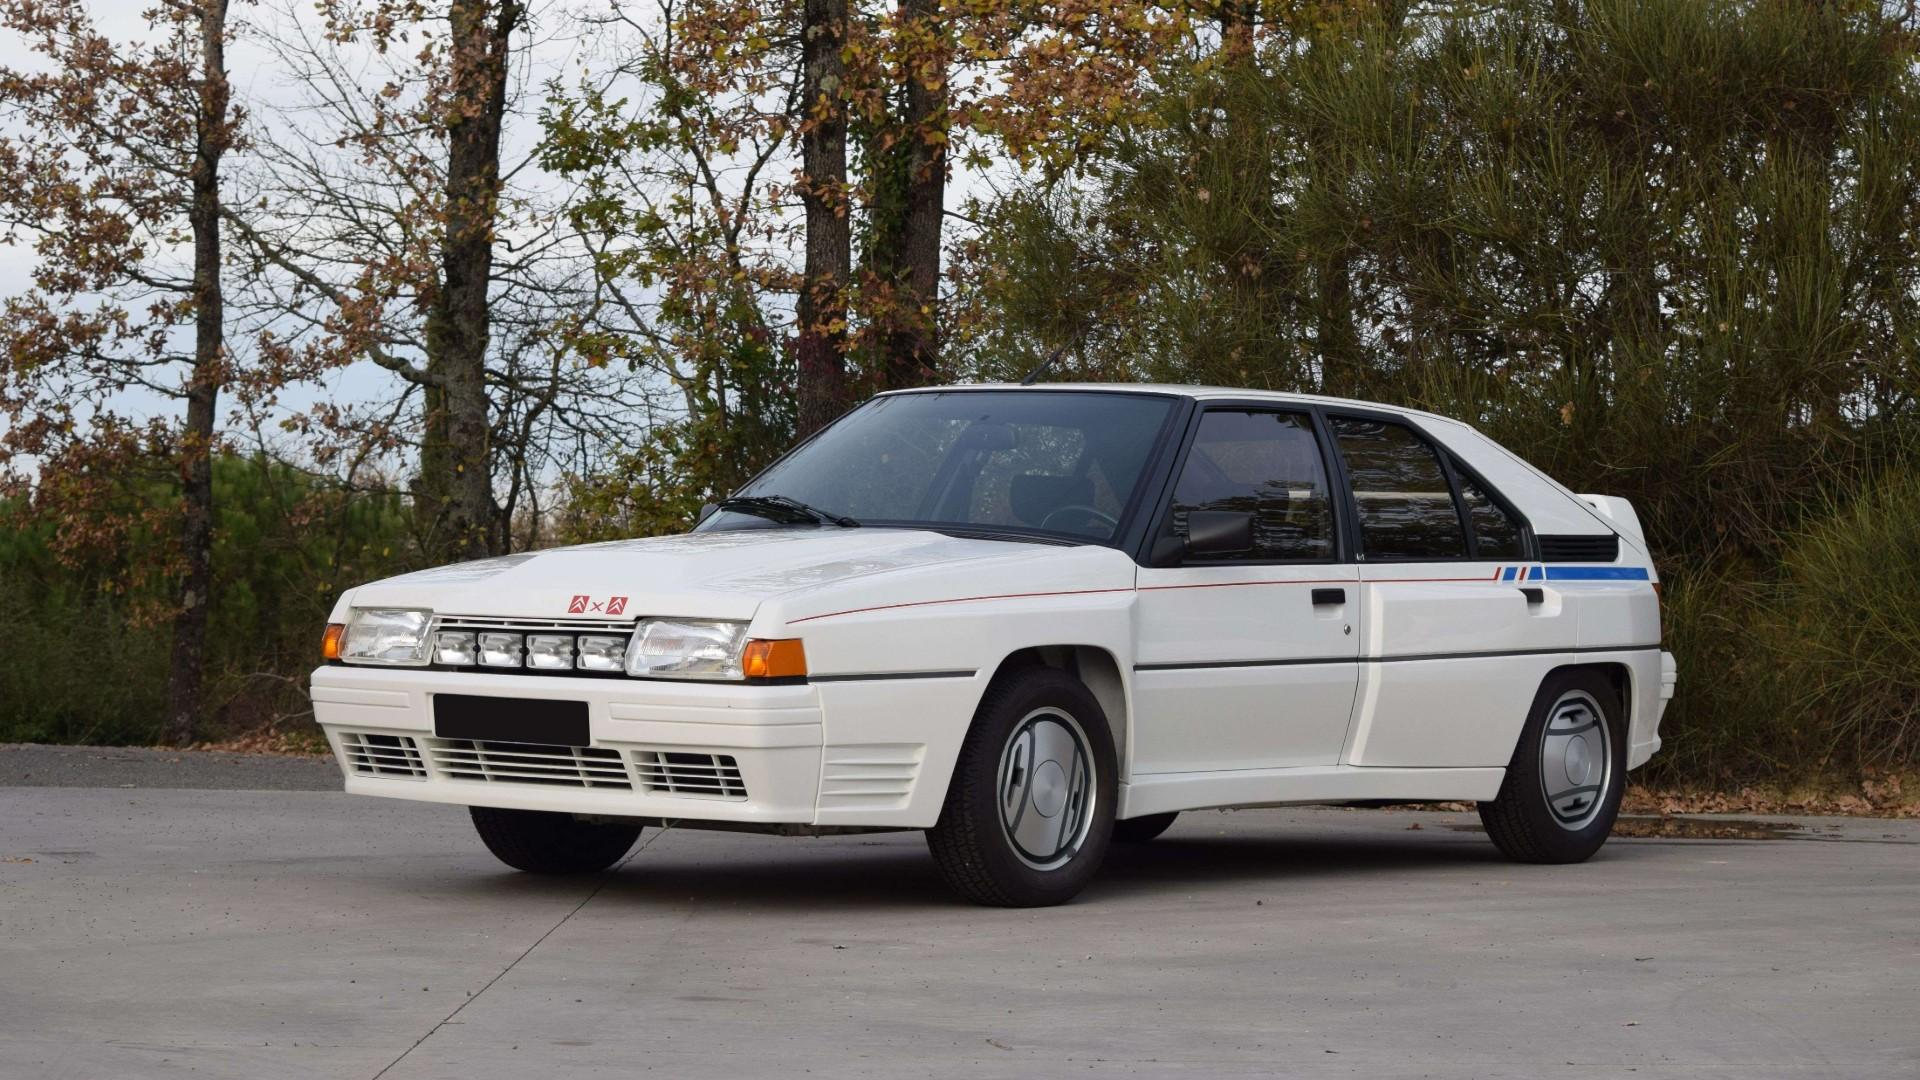 Citroen's forgotten BX 4TC Group B car is a potential bargain